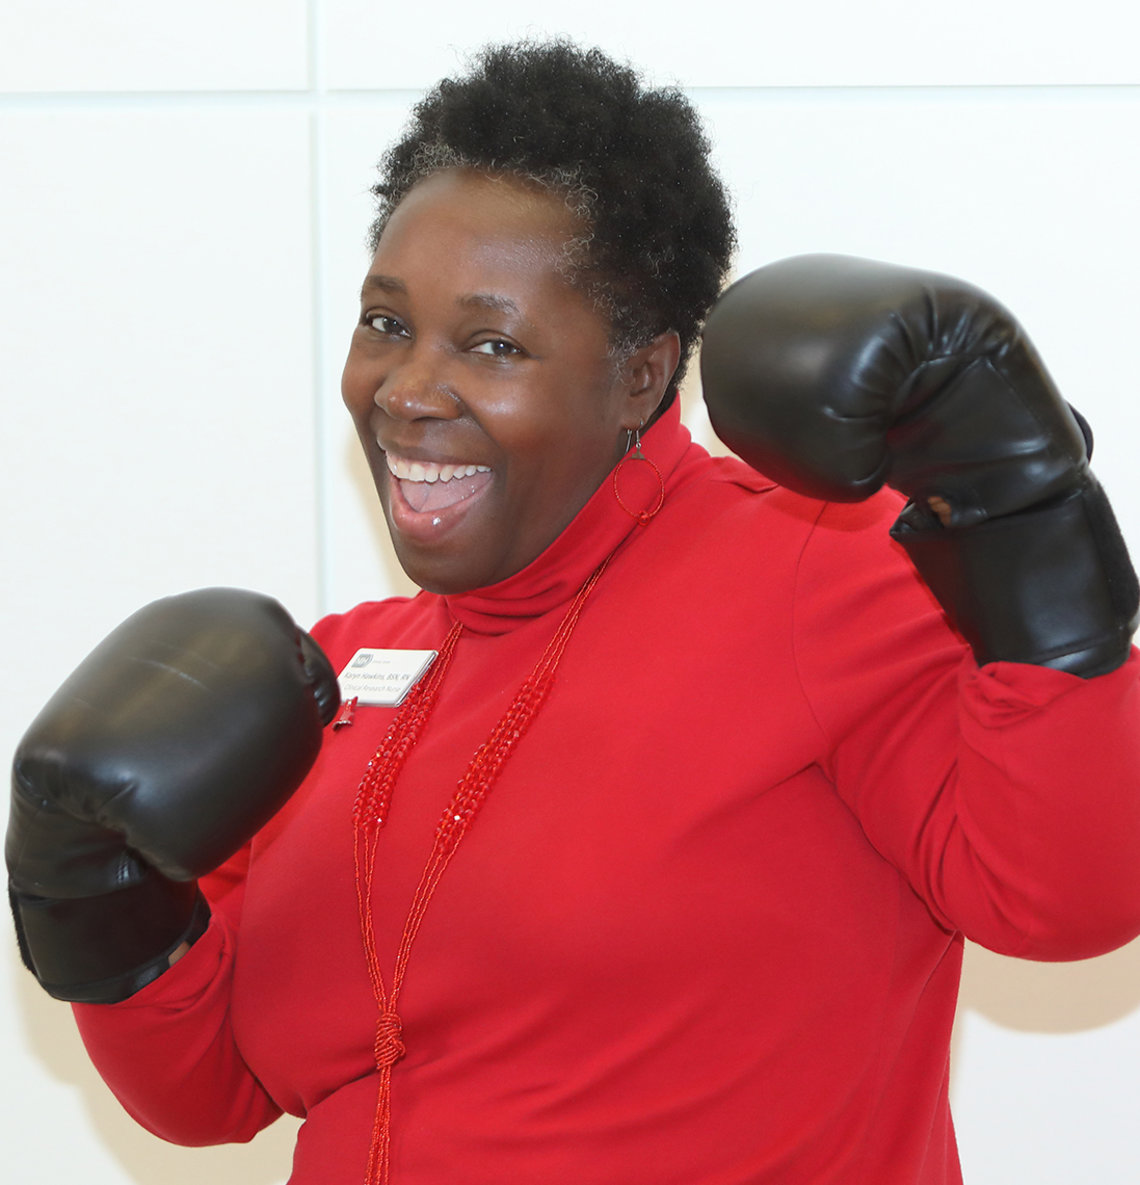 Clinical Center nurse poses in boxing gloves